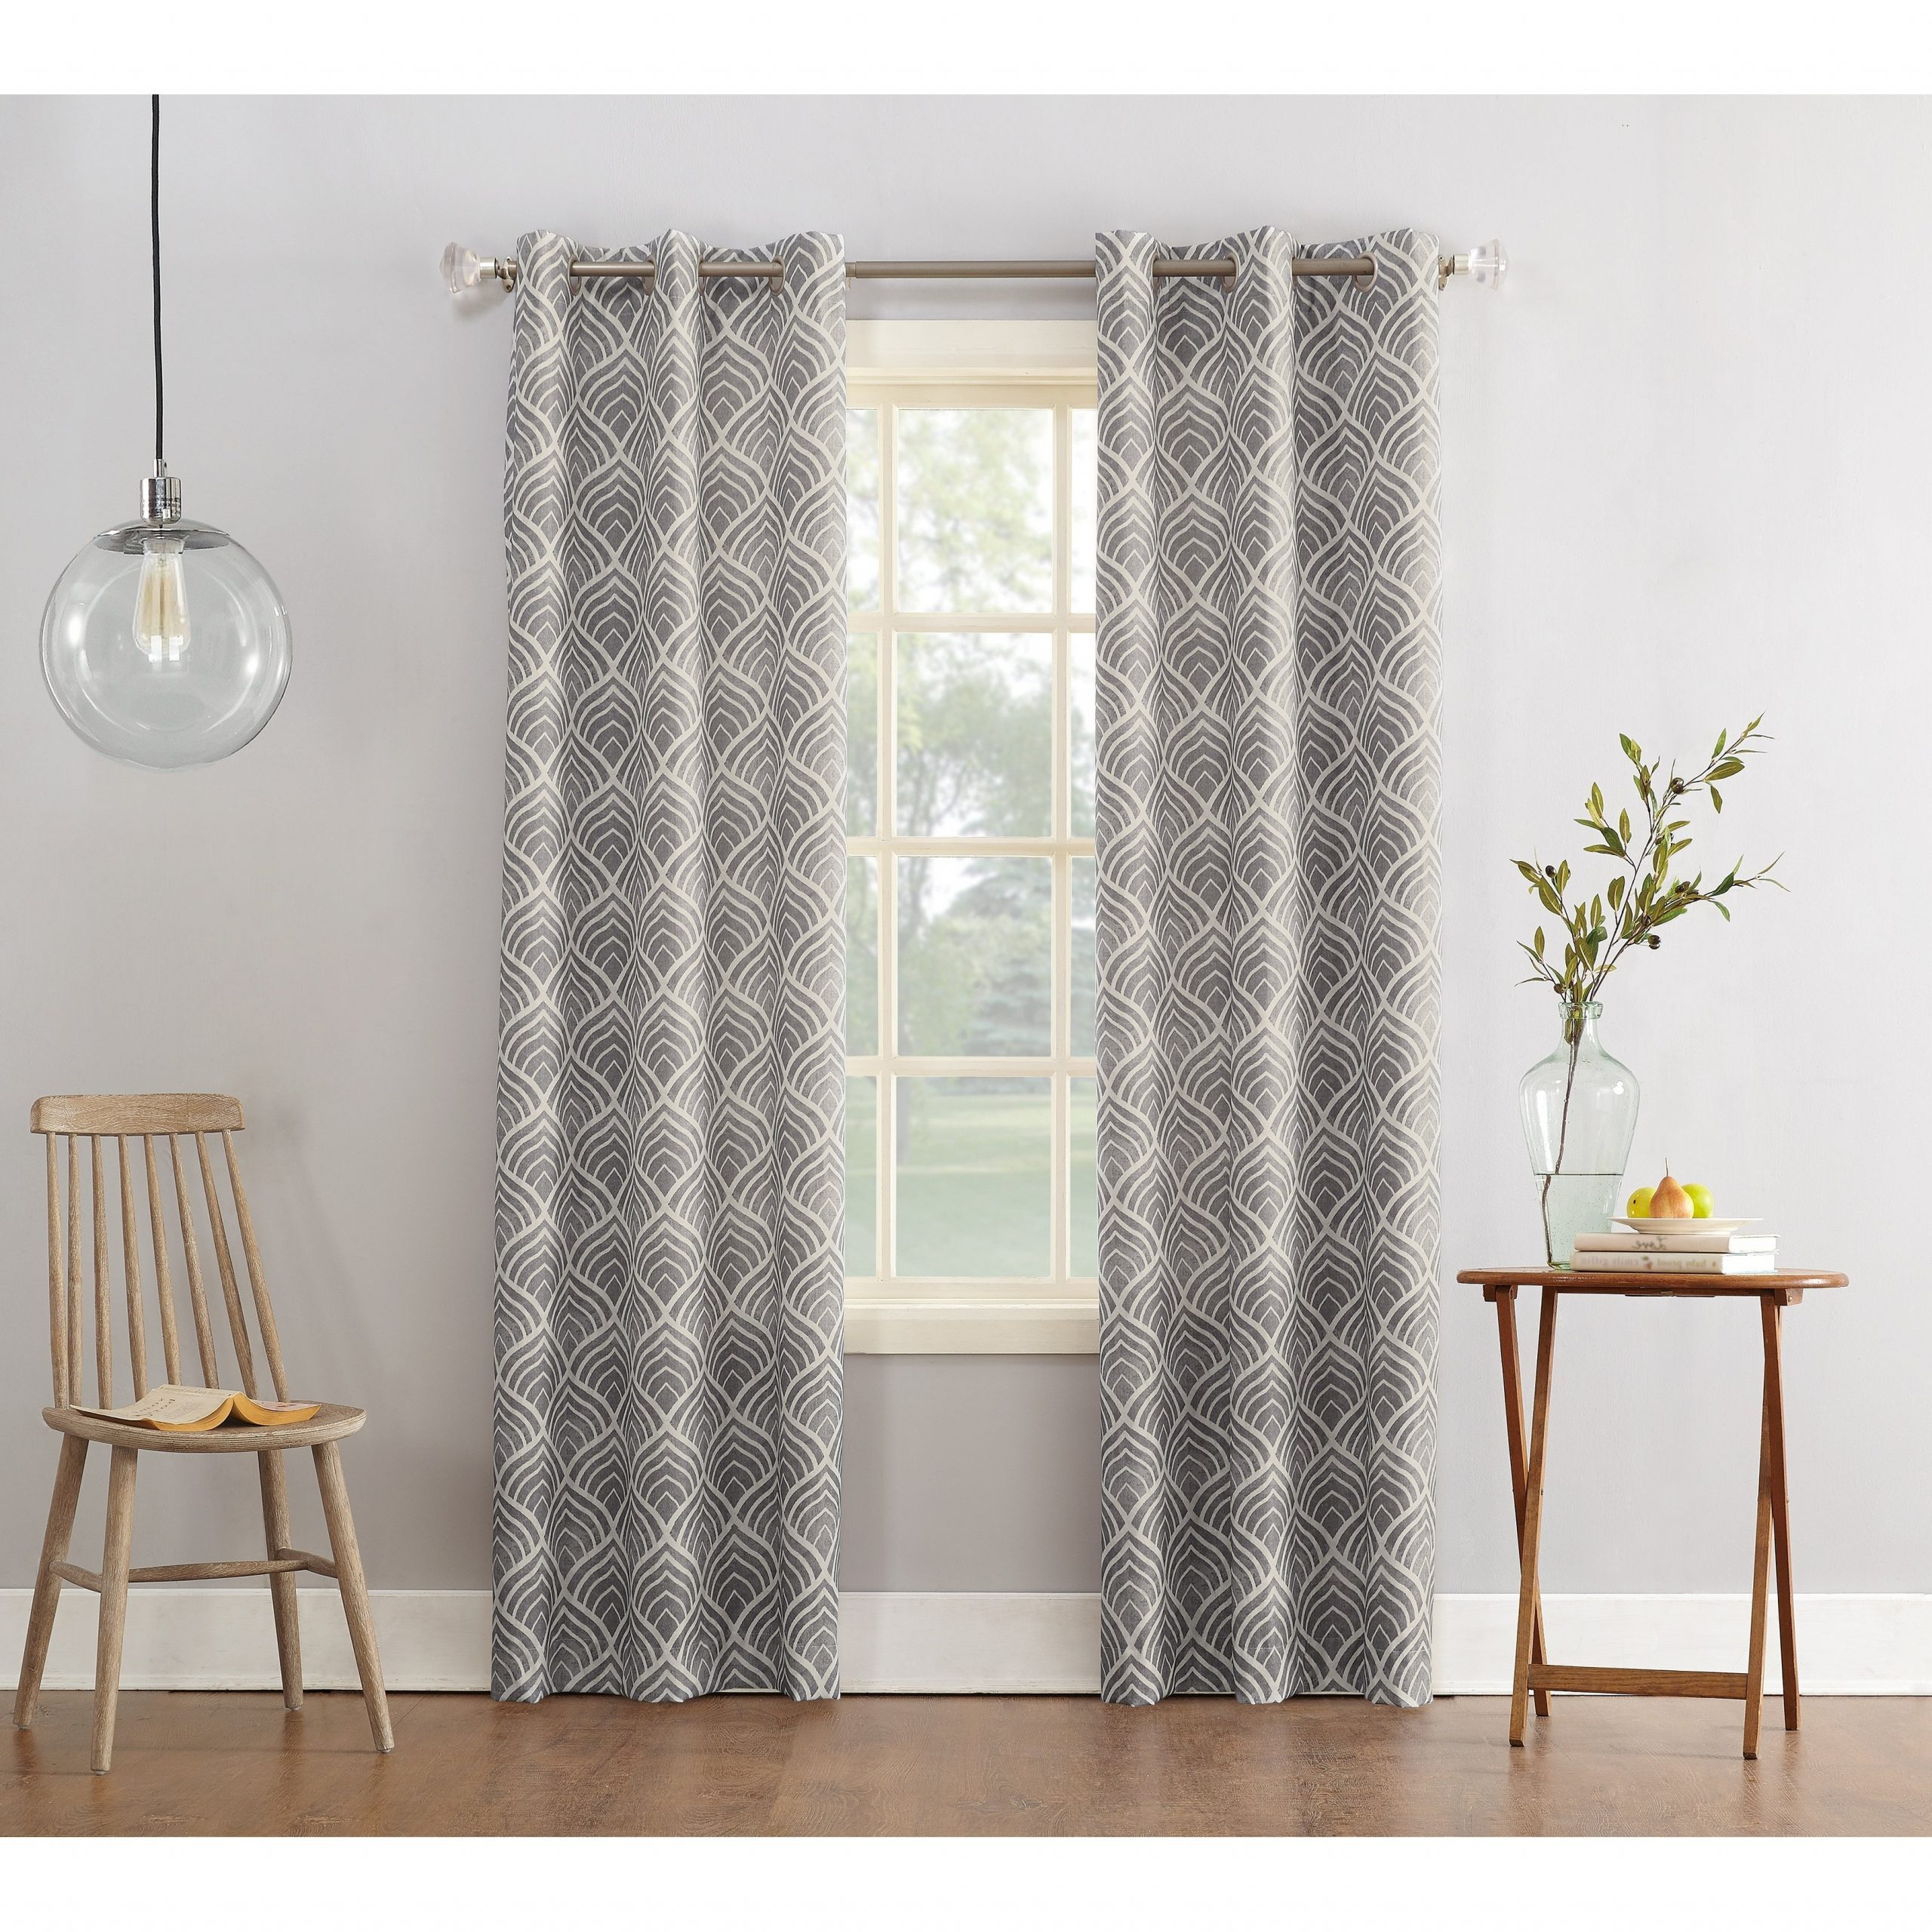 2021 Geometric Print Textured Thermal Insulated Grommet Curtain Panels For Sun Zero Clarke Geometric Print Textured Thermal Insulated Grommet Curtain Panel (View 2 of 20)